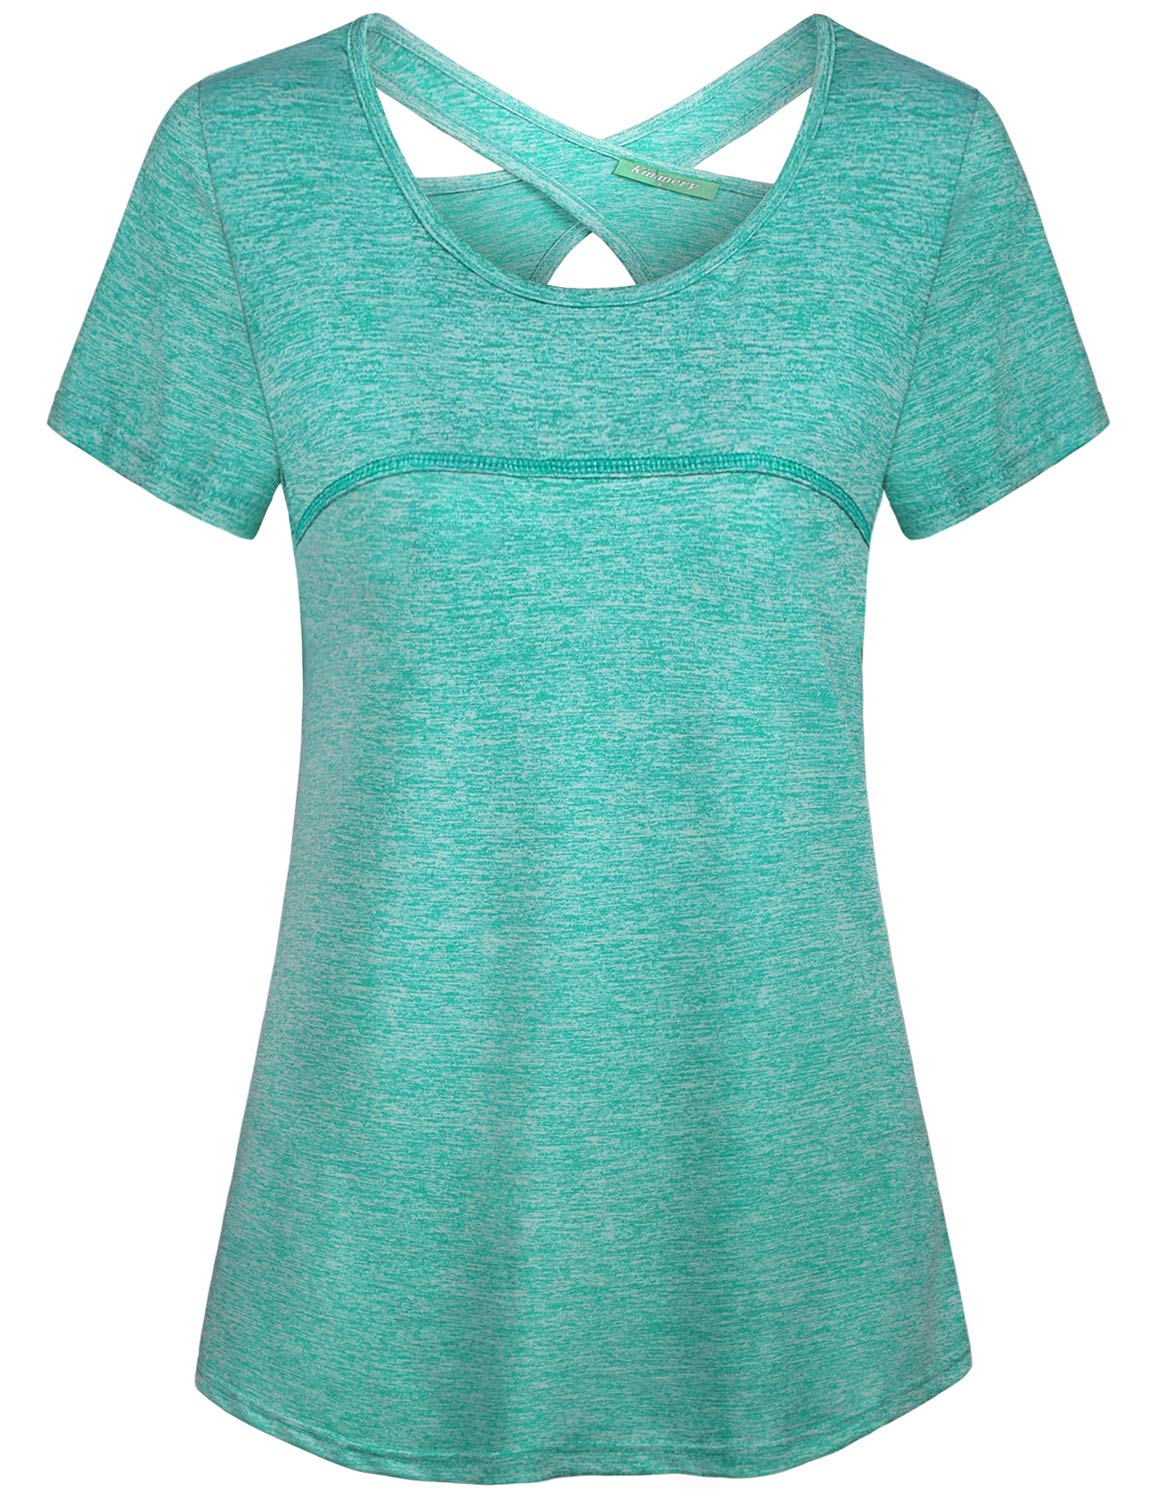 Kimmery Activewear Tops for Women, Loose Fit Sporty Tees Stretchy Thin Airy Fashion Criss Cross Cutout Back Workout Shirts Crew Neck Essential Basic Pilates Hiking Camping House Casual Tunic Green L by connche